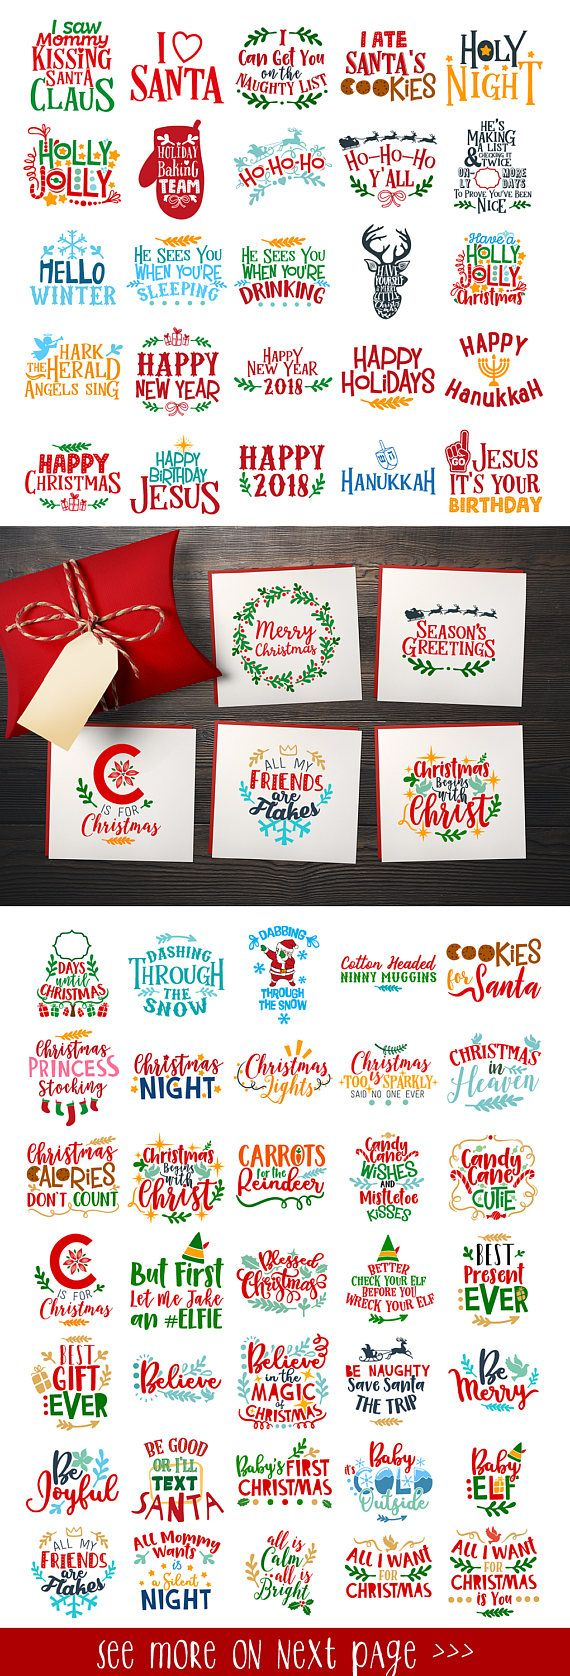 Christmas Svg Christmas Bundle Svg Christmas Svg Bundle Christmas Files Bundle Cut Files Silhouette Studio Cricut ScanNCut Svg Dxf Png Cdr